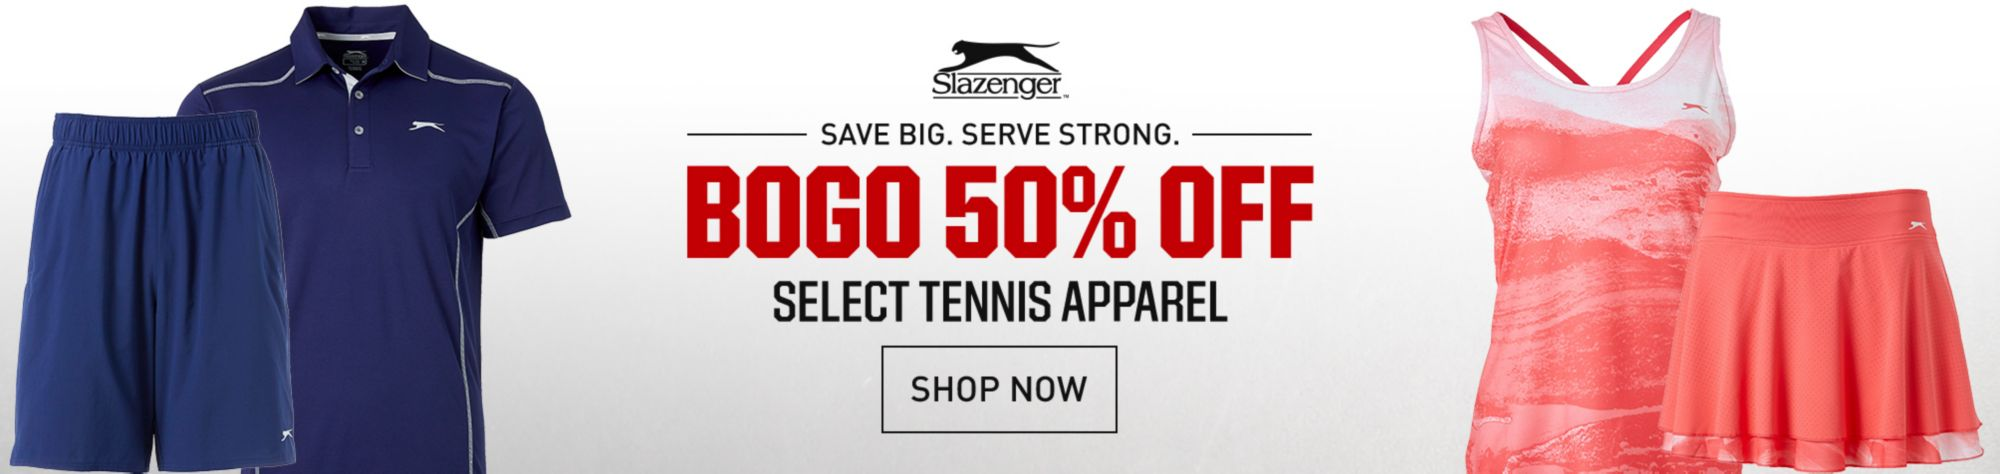 BOGO 50% Off Slazenger Tennis Apparel